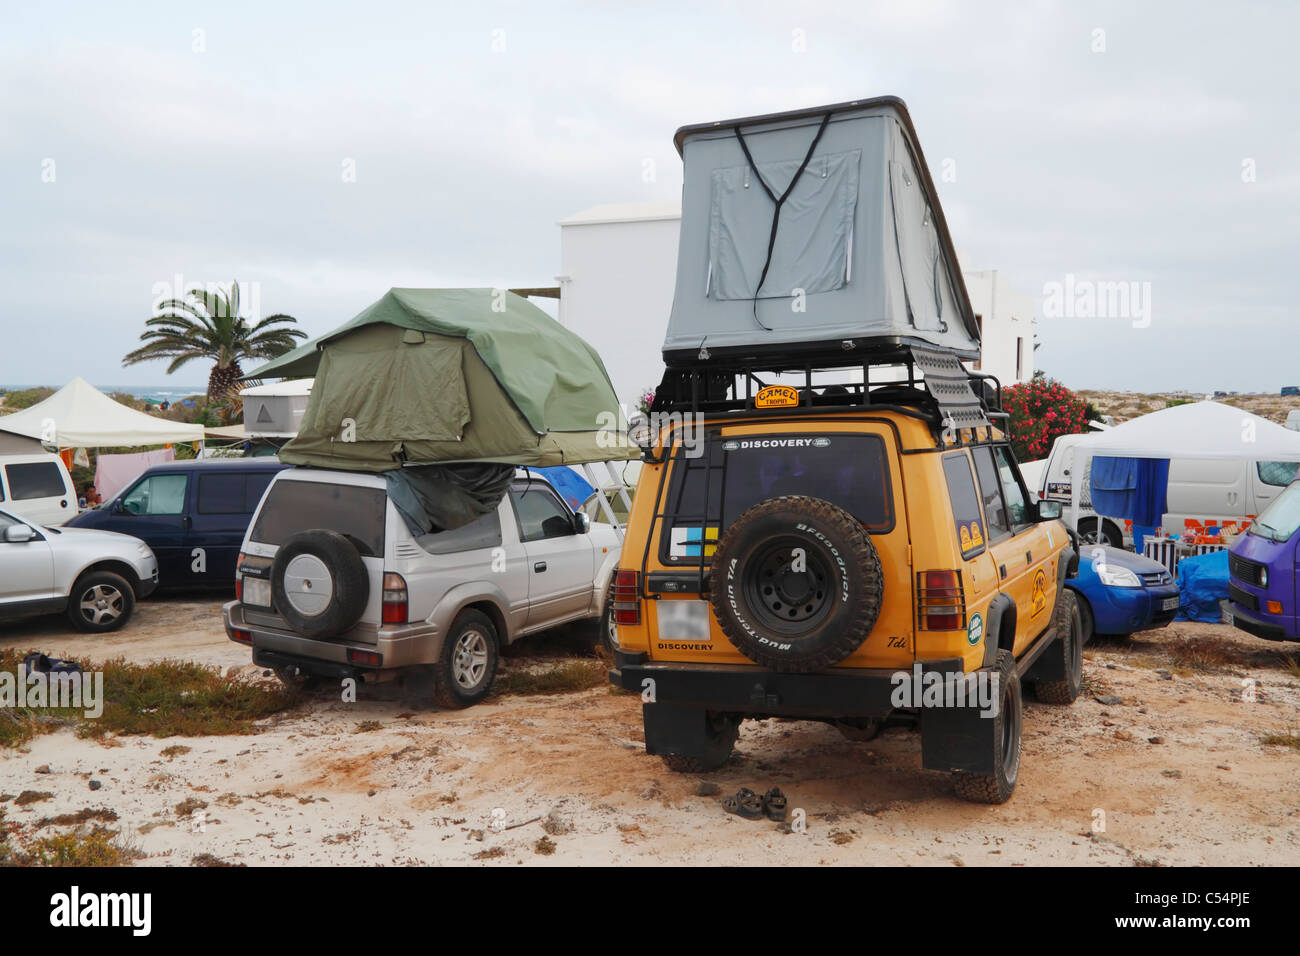 Land Rover Discovery with roof tent on beach on Fuerteventura Canary Islands Spain & Land Rover Discovery with roof tent on beach on Fuerteventura ...